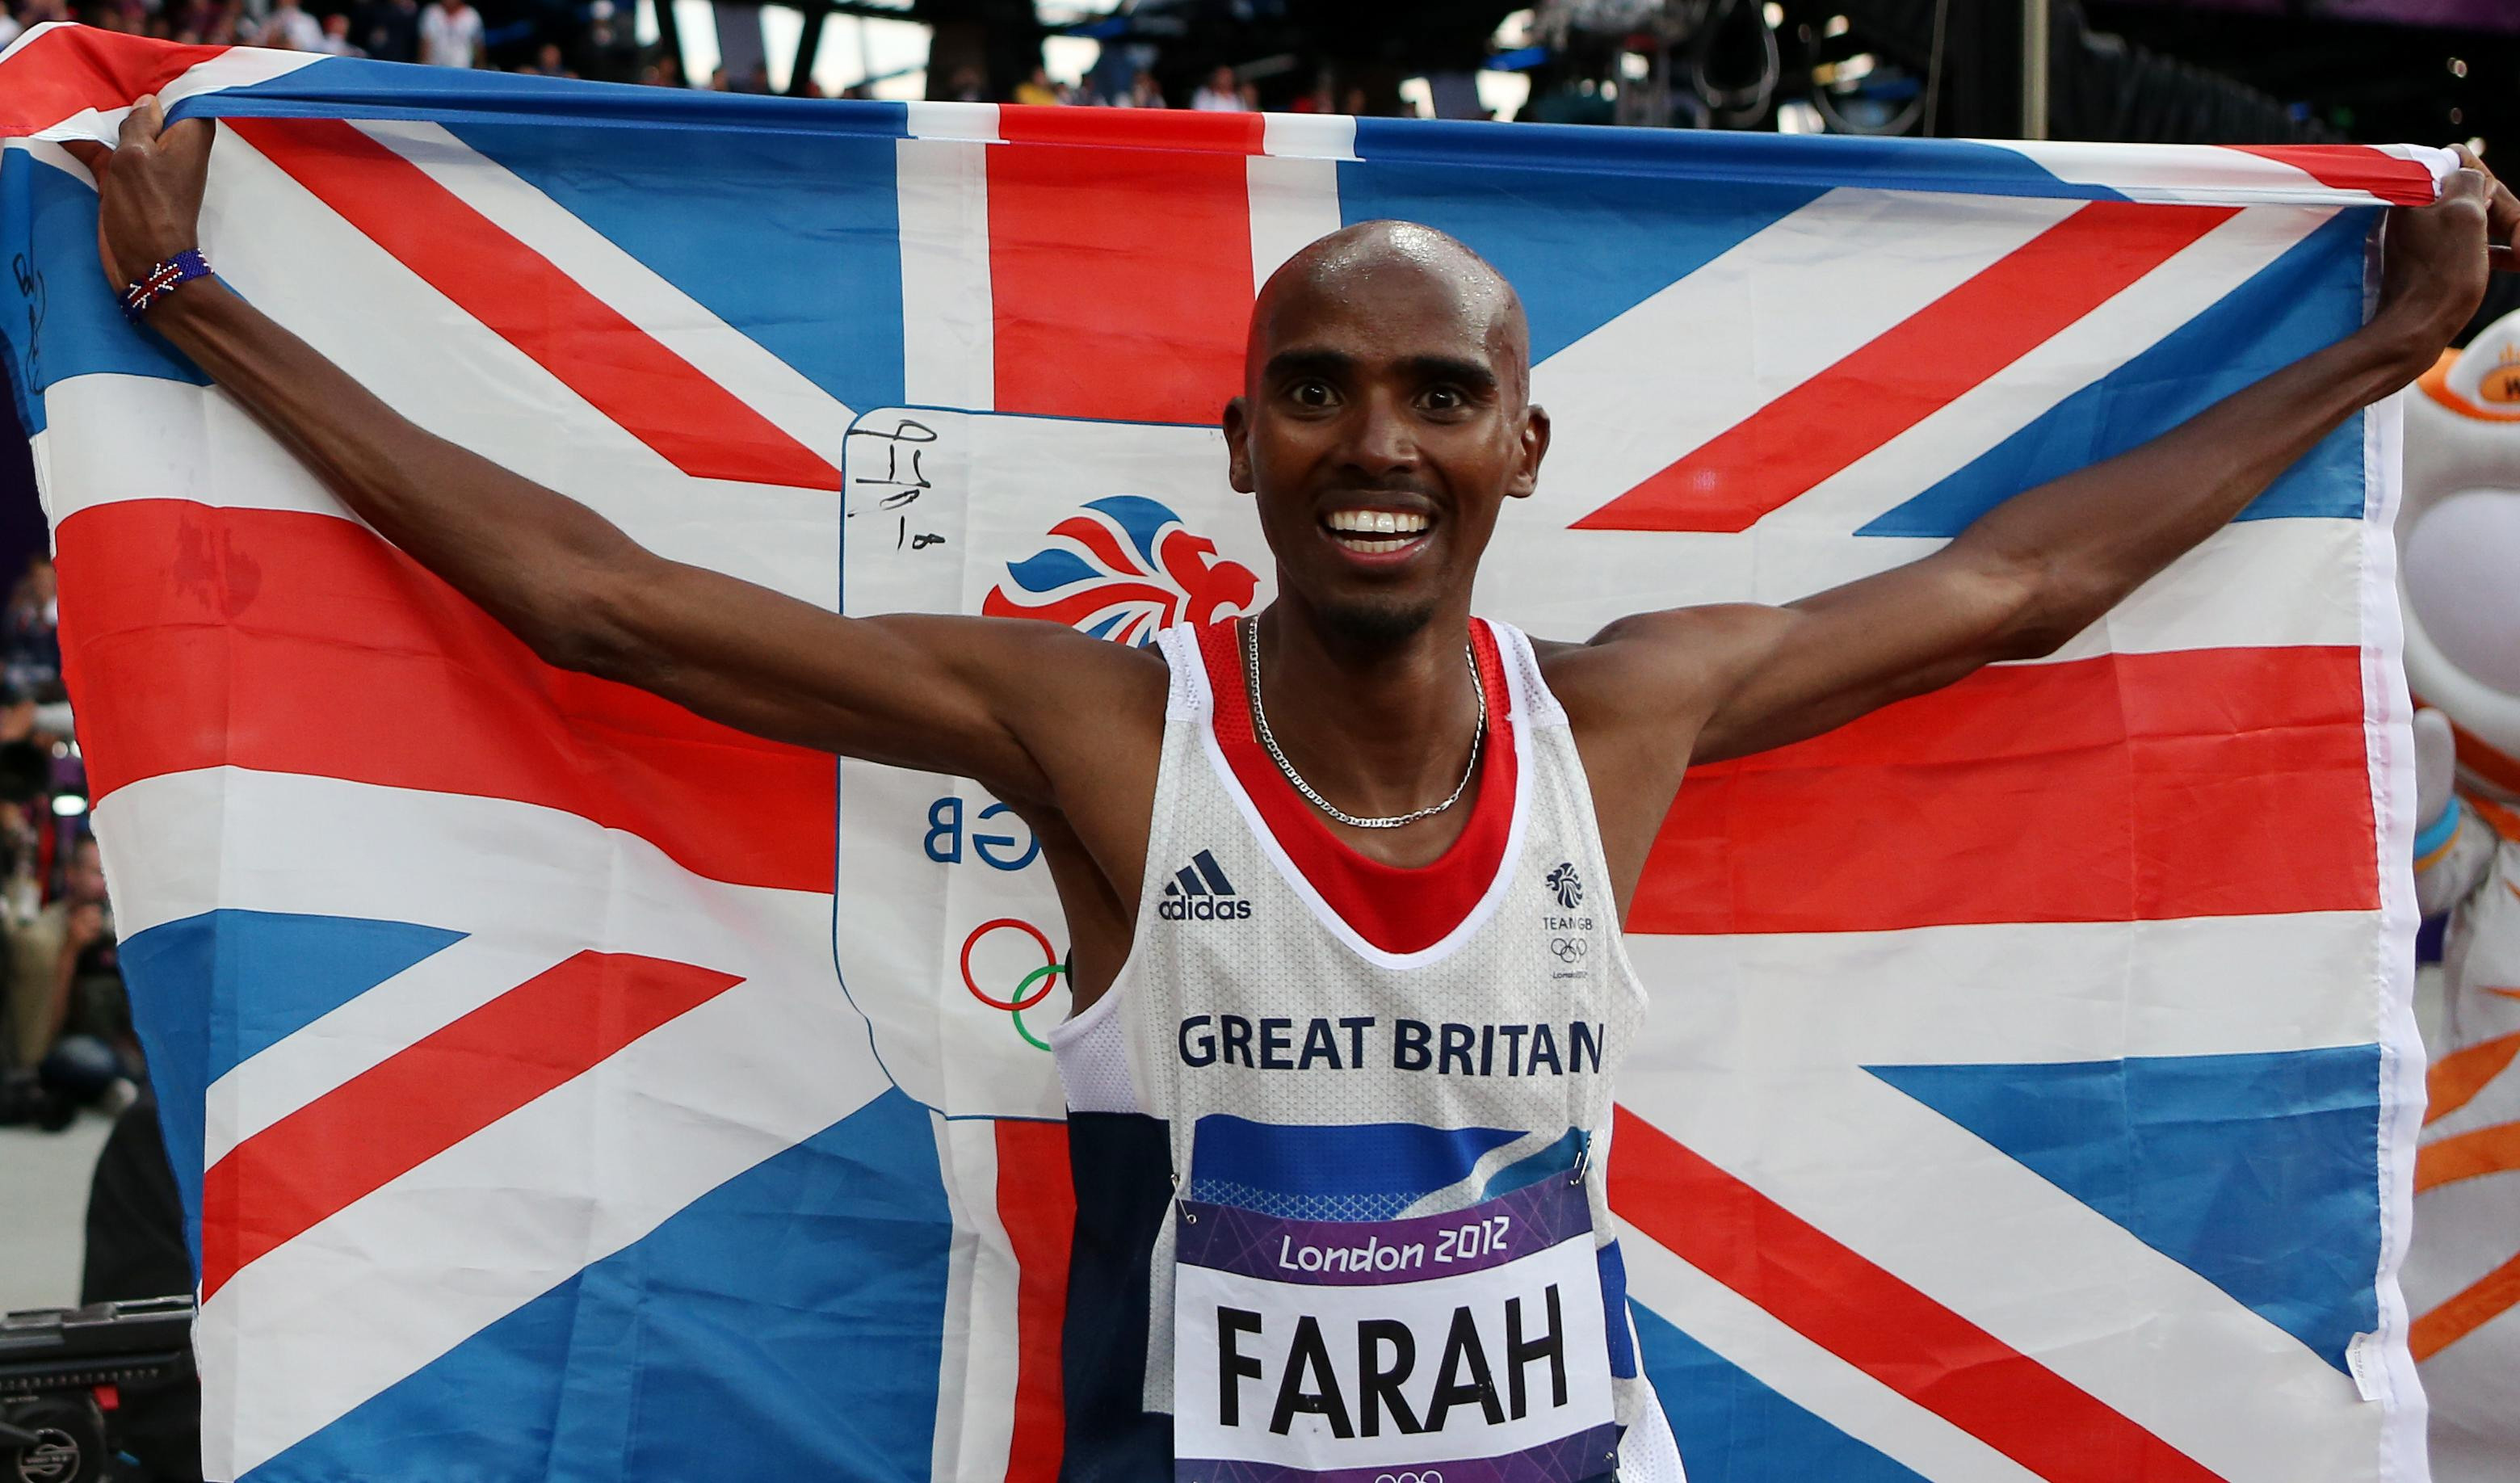 Mo Farah Wins London 2012 Gold Medal